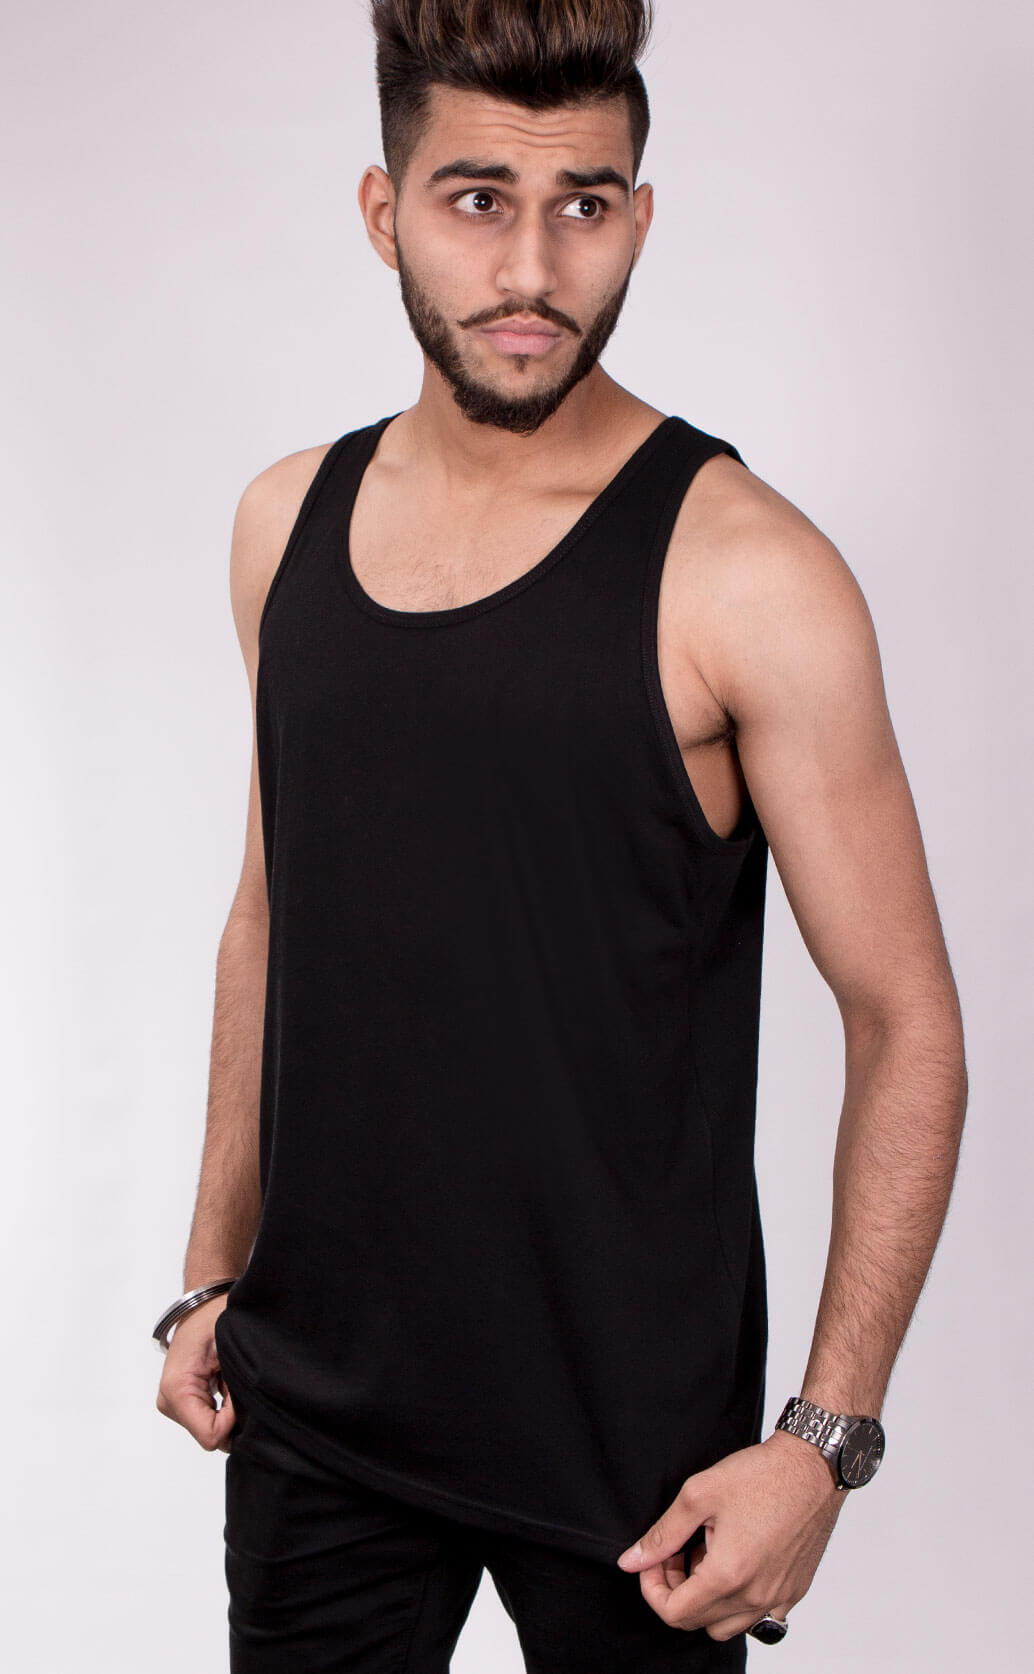 Size guide image for Unisex Vest mens shirt type. Model is male and dressed in black